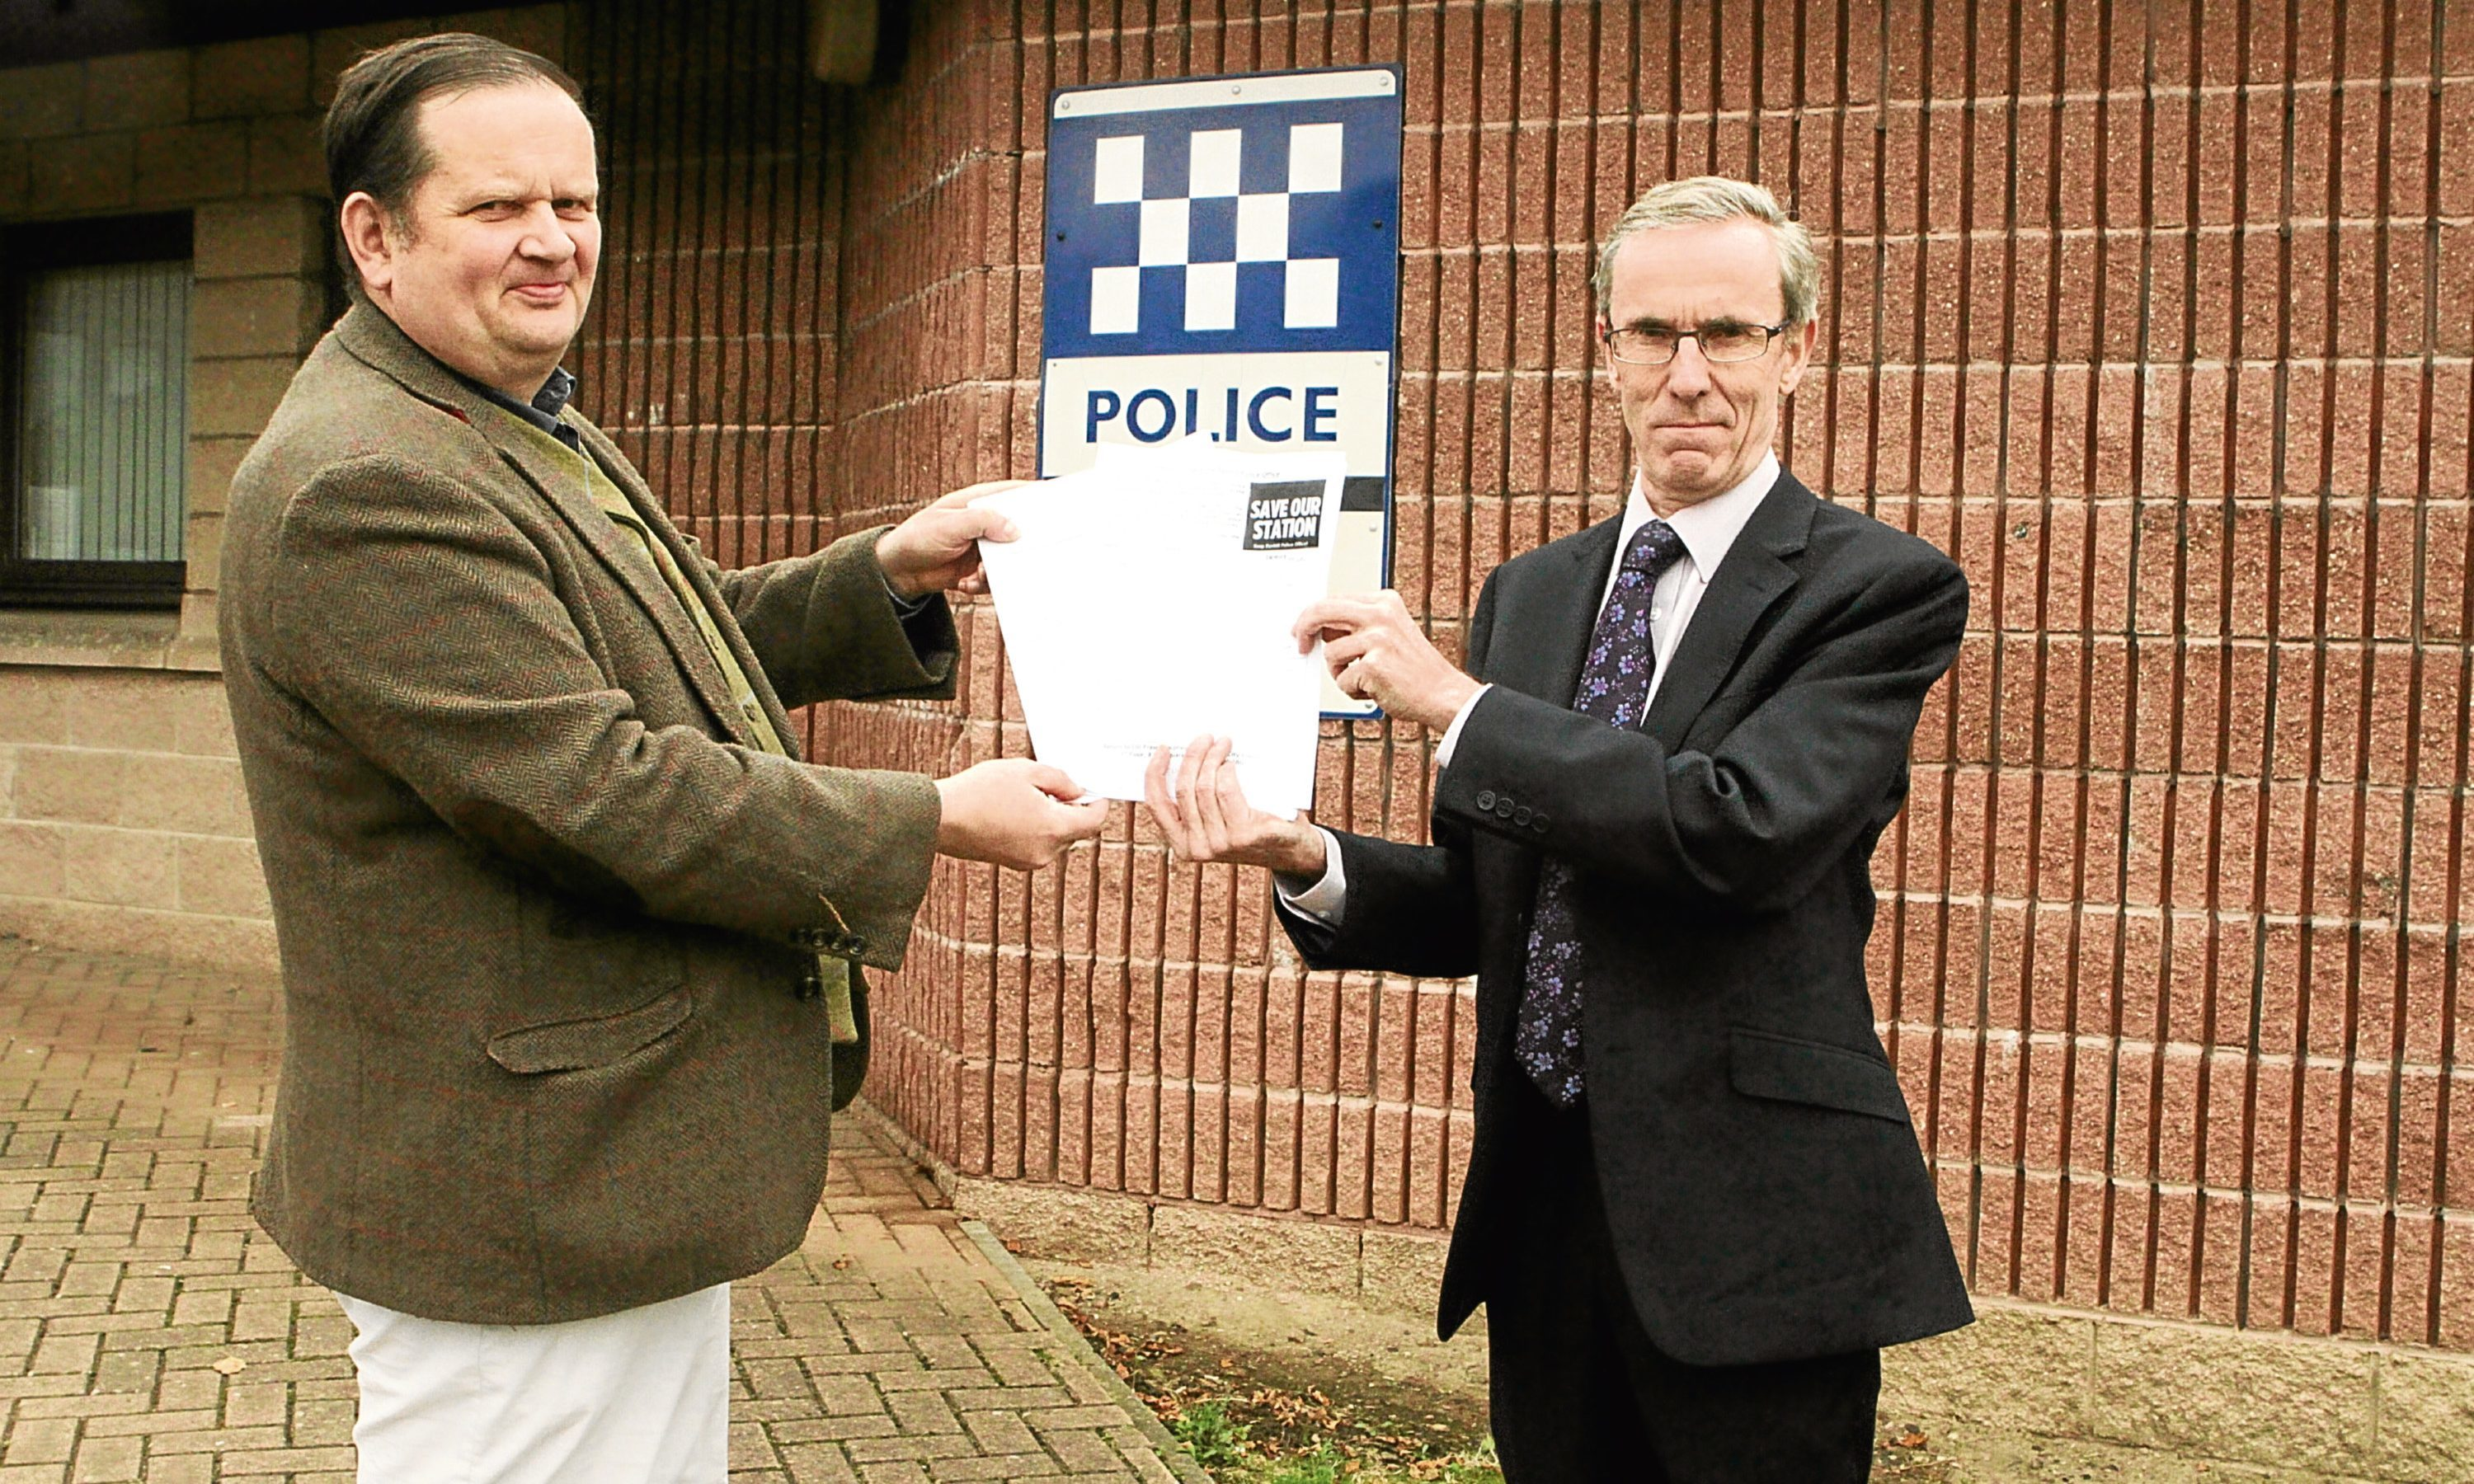 Peter Menzies, chair of West End Community Council, and Councillor Fraser Macpherson handing in the petition.